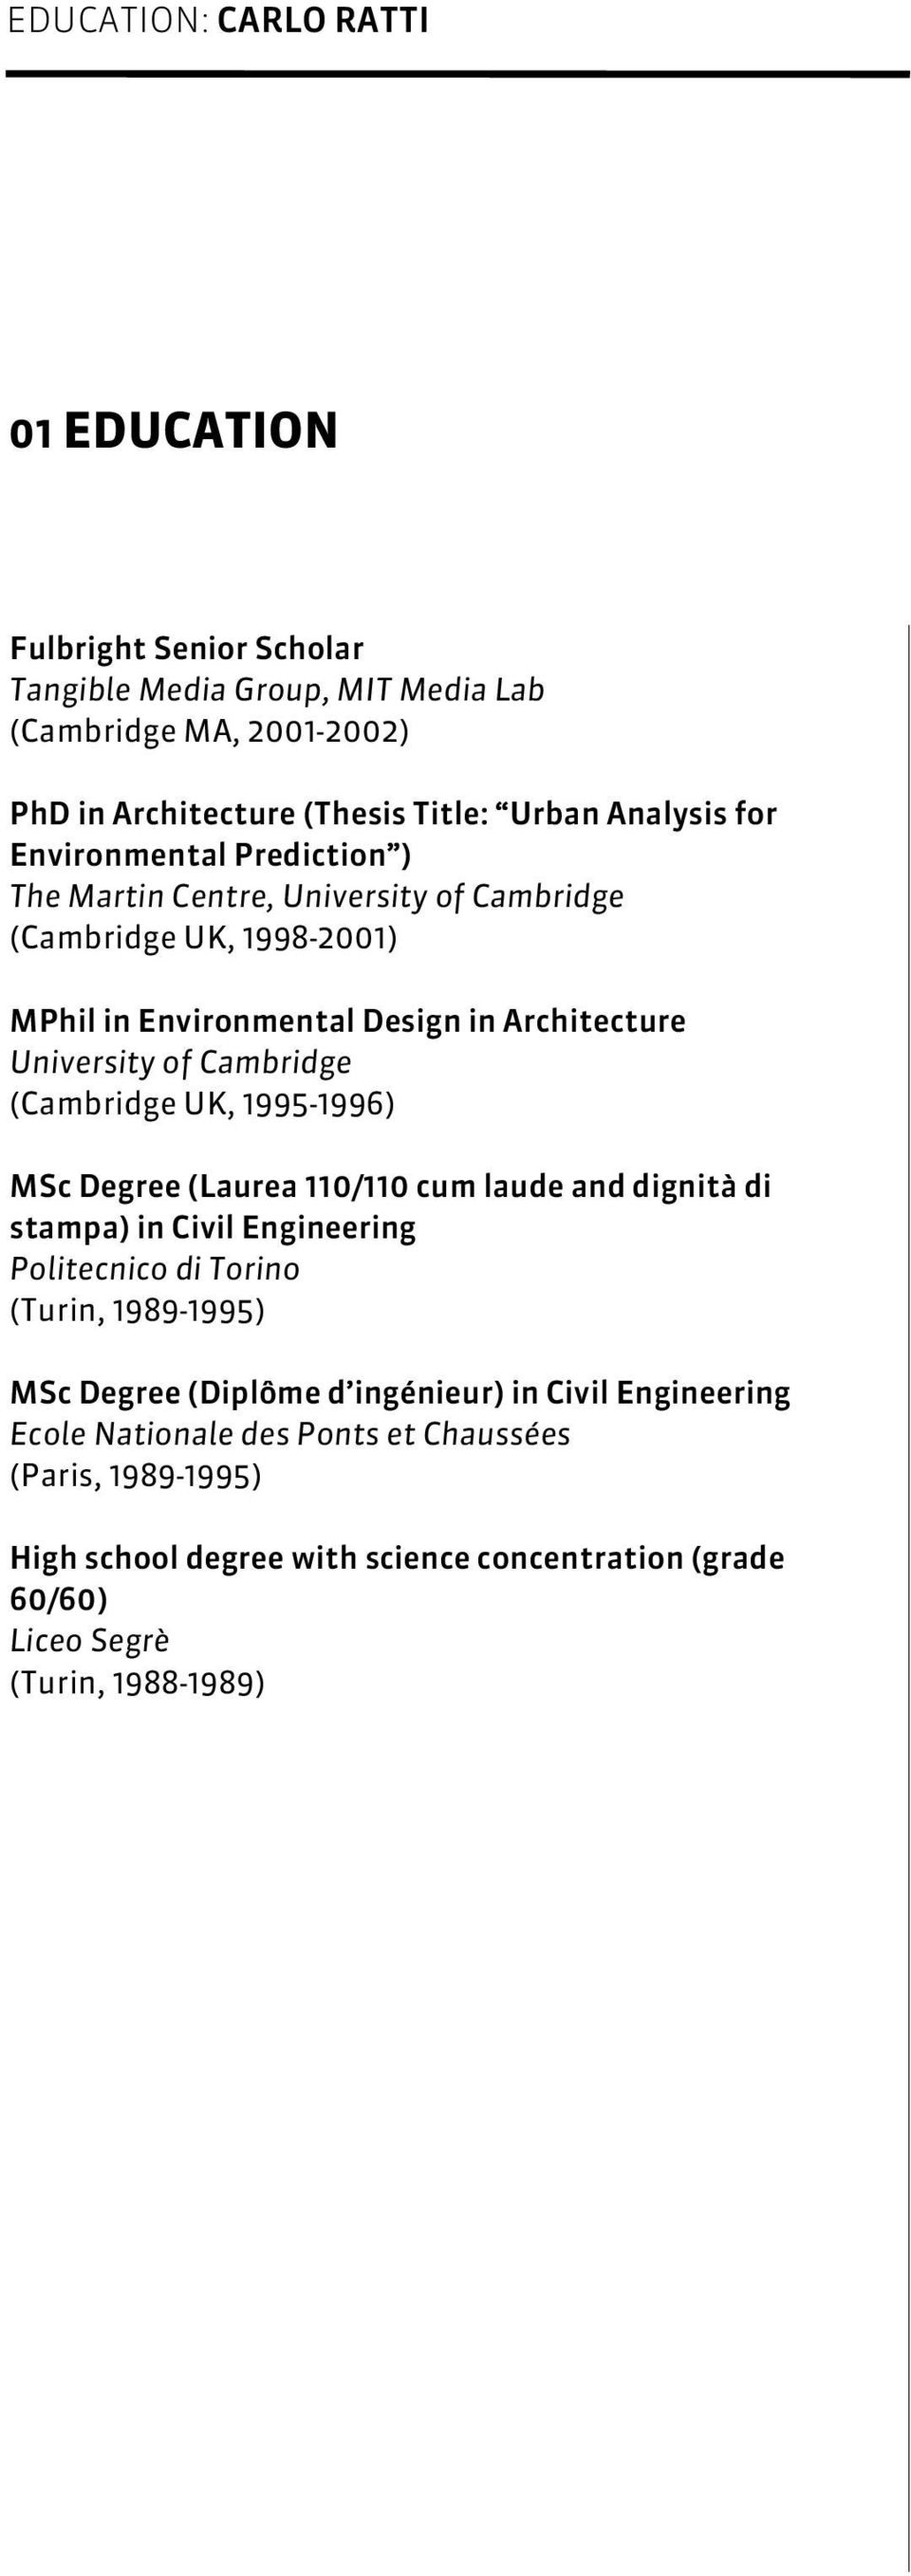 (Cambridge UK, 1995-1996) MSc Degree (Laurea 110/110 cum laude and dignità di stampa) in Civil Engineering Politecnico di Torino (Turin, 1989-1995) MSc Degree (Diplôme d